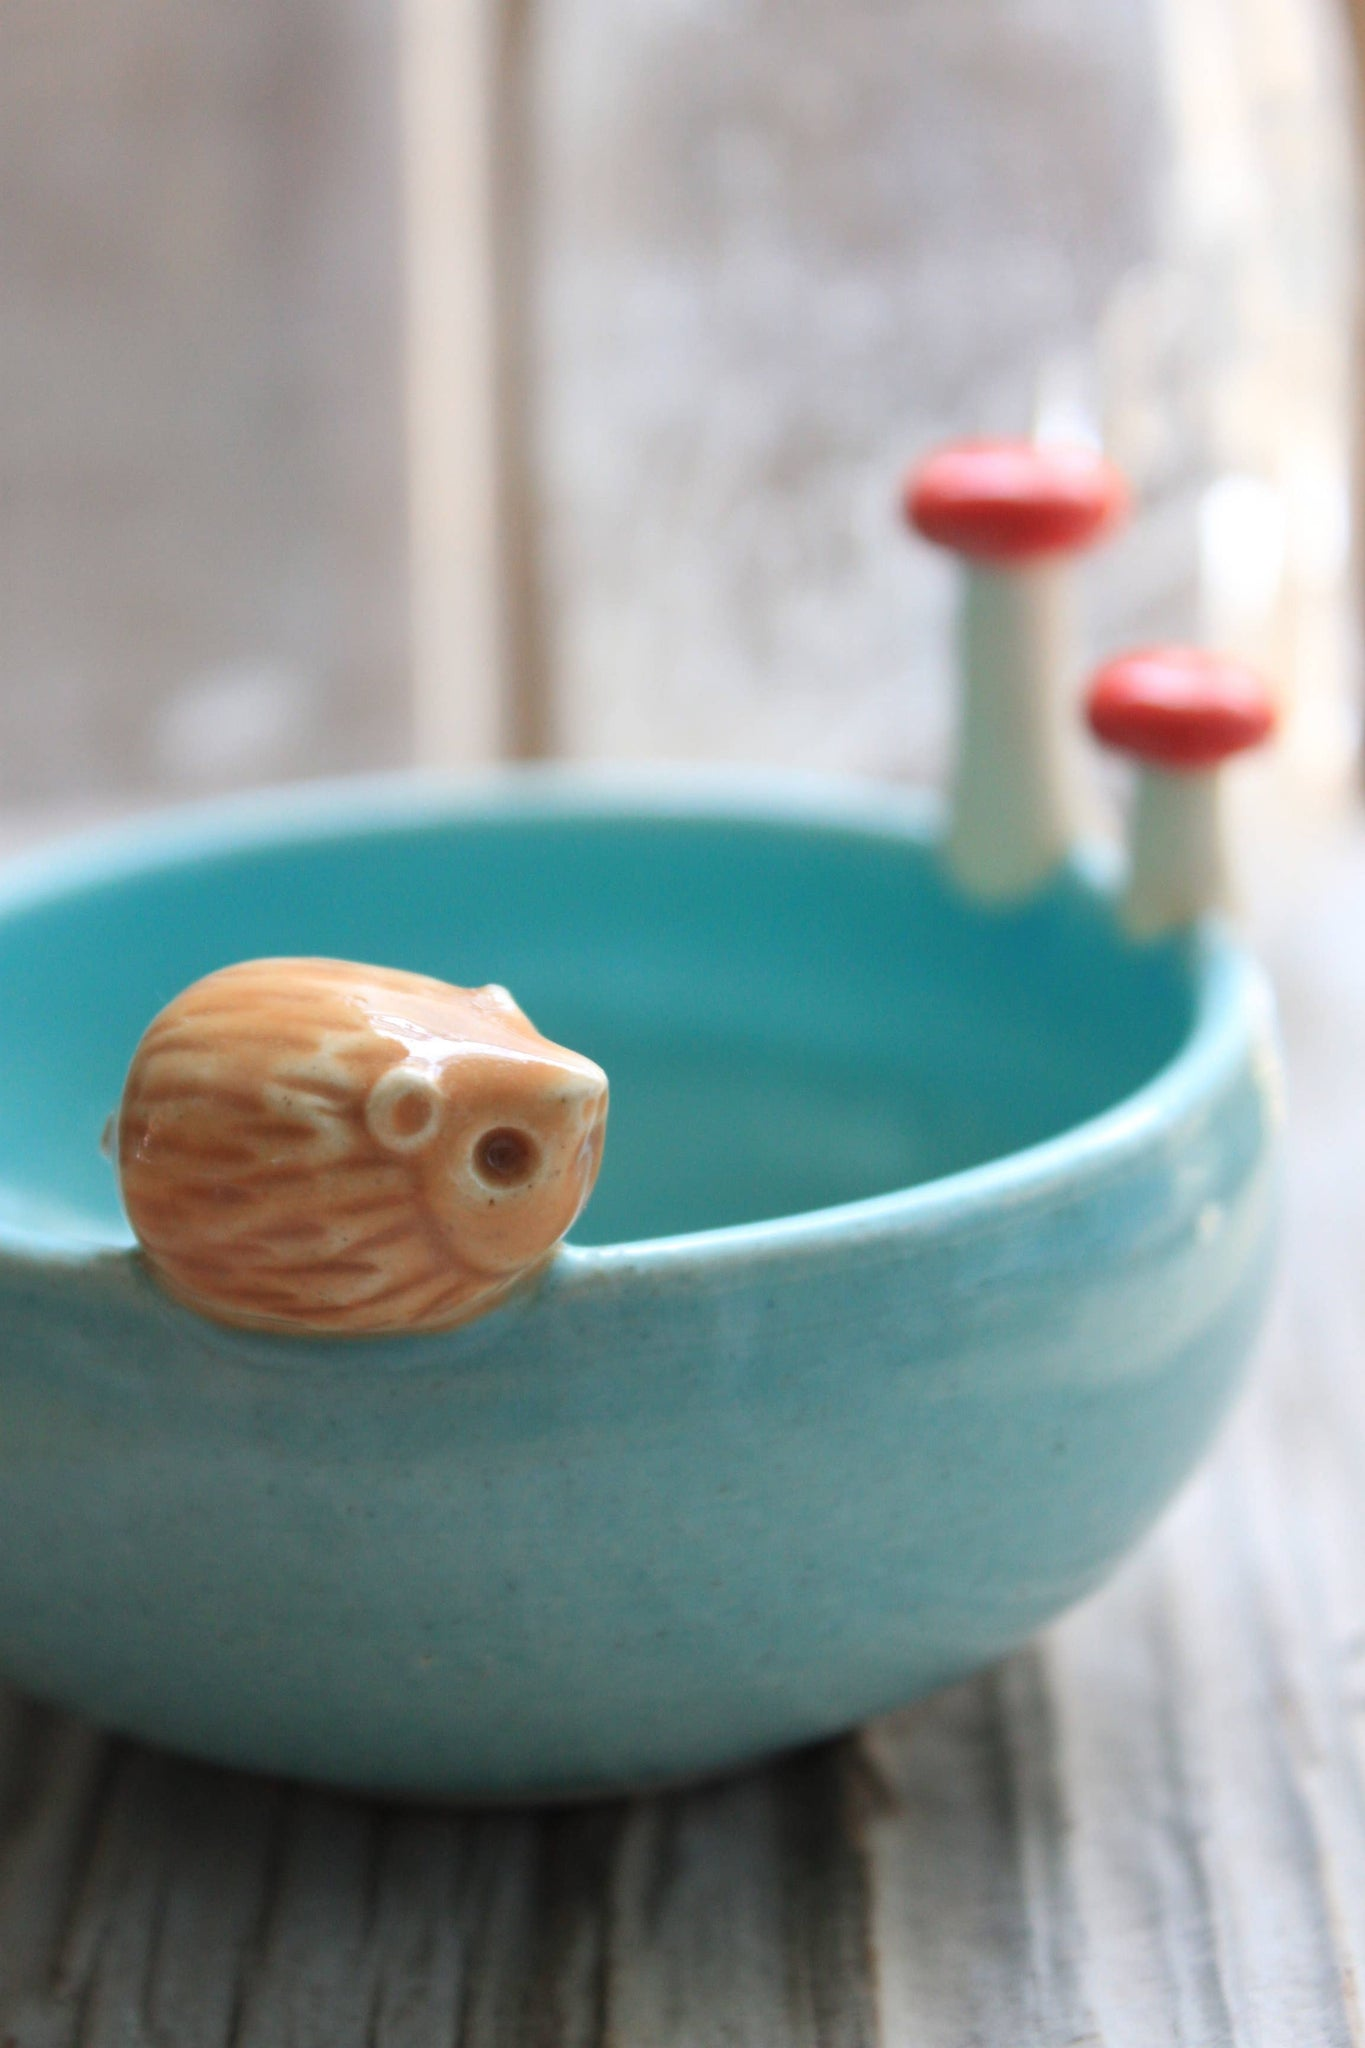 Tasha McKelvey - Small Hedgehog Bowl with Mushrooms